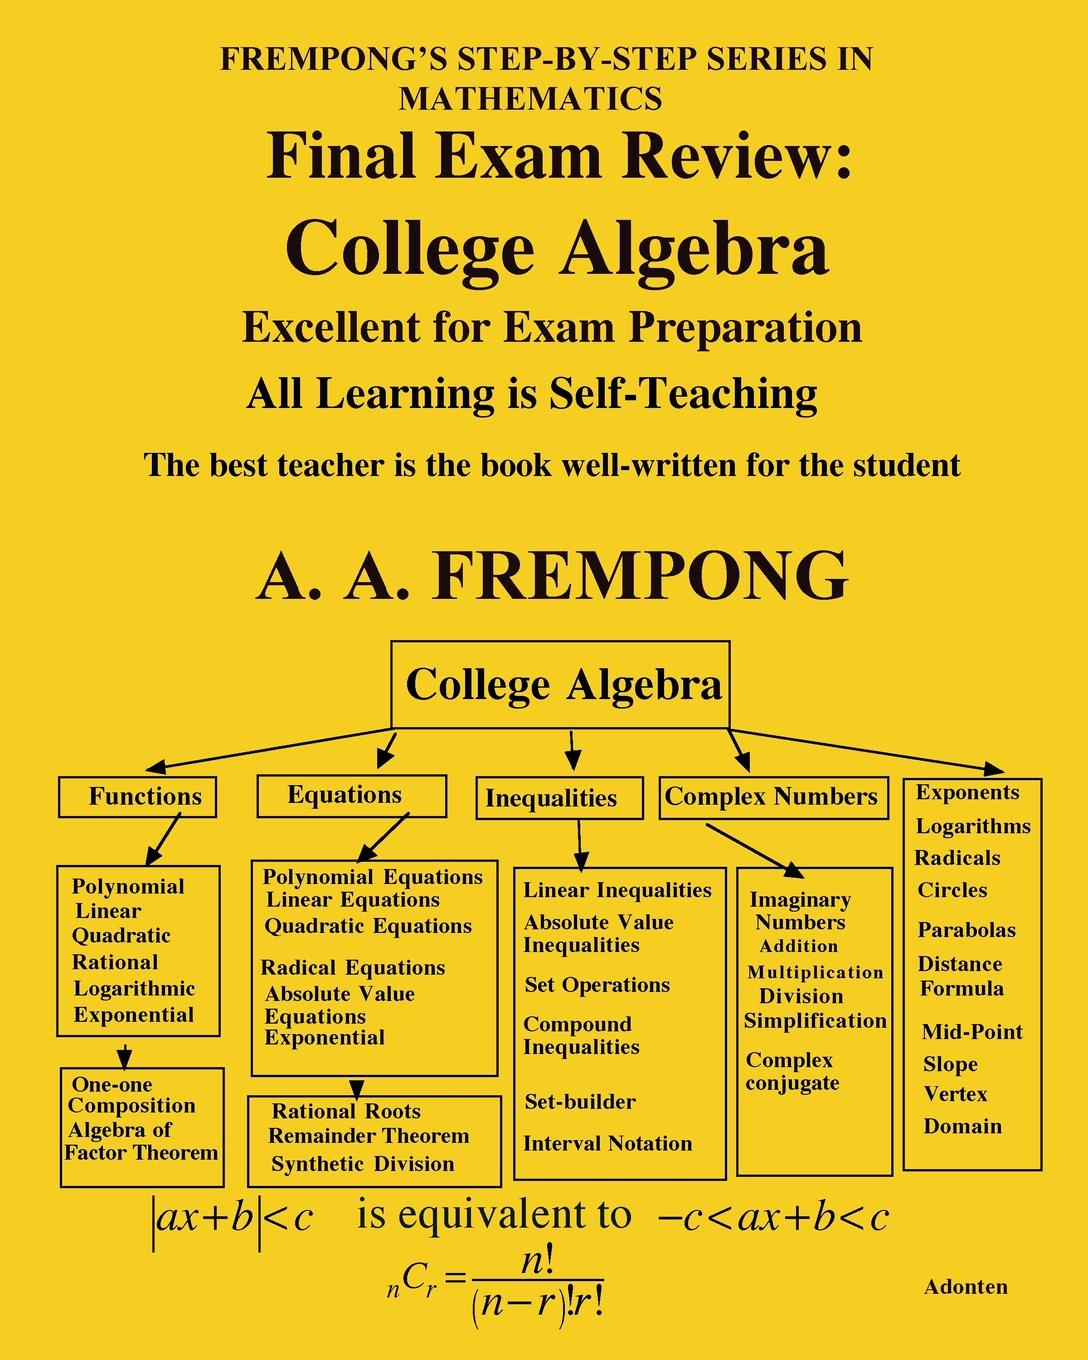 A. A. Frempong Final Exam Review. College Algebra andrei bourchtein counterexamples on uniform convergence sequences series functions and integrals